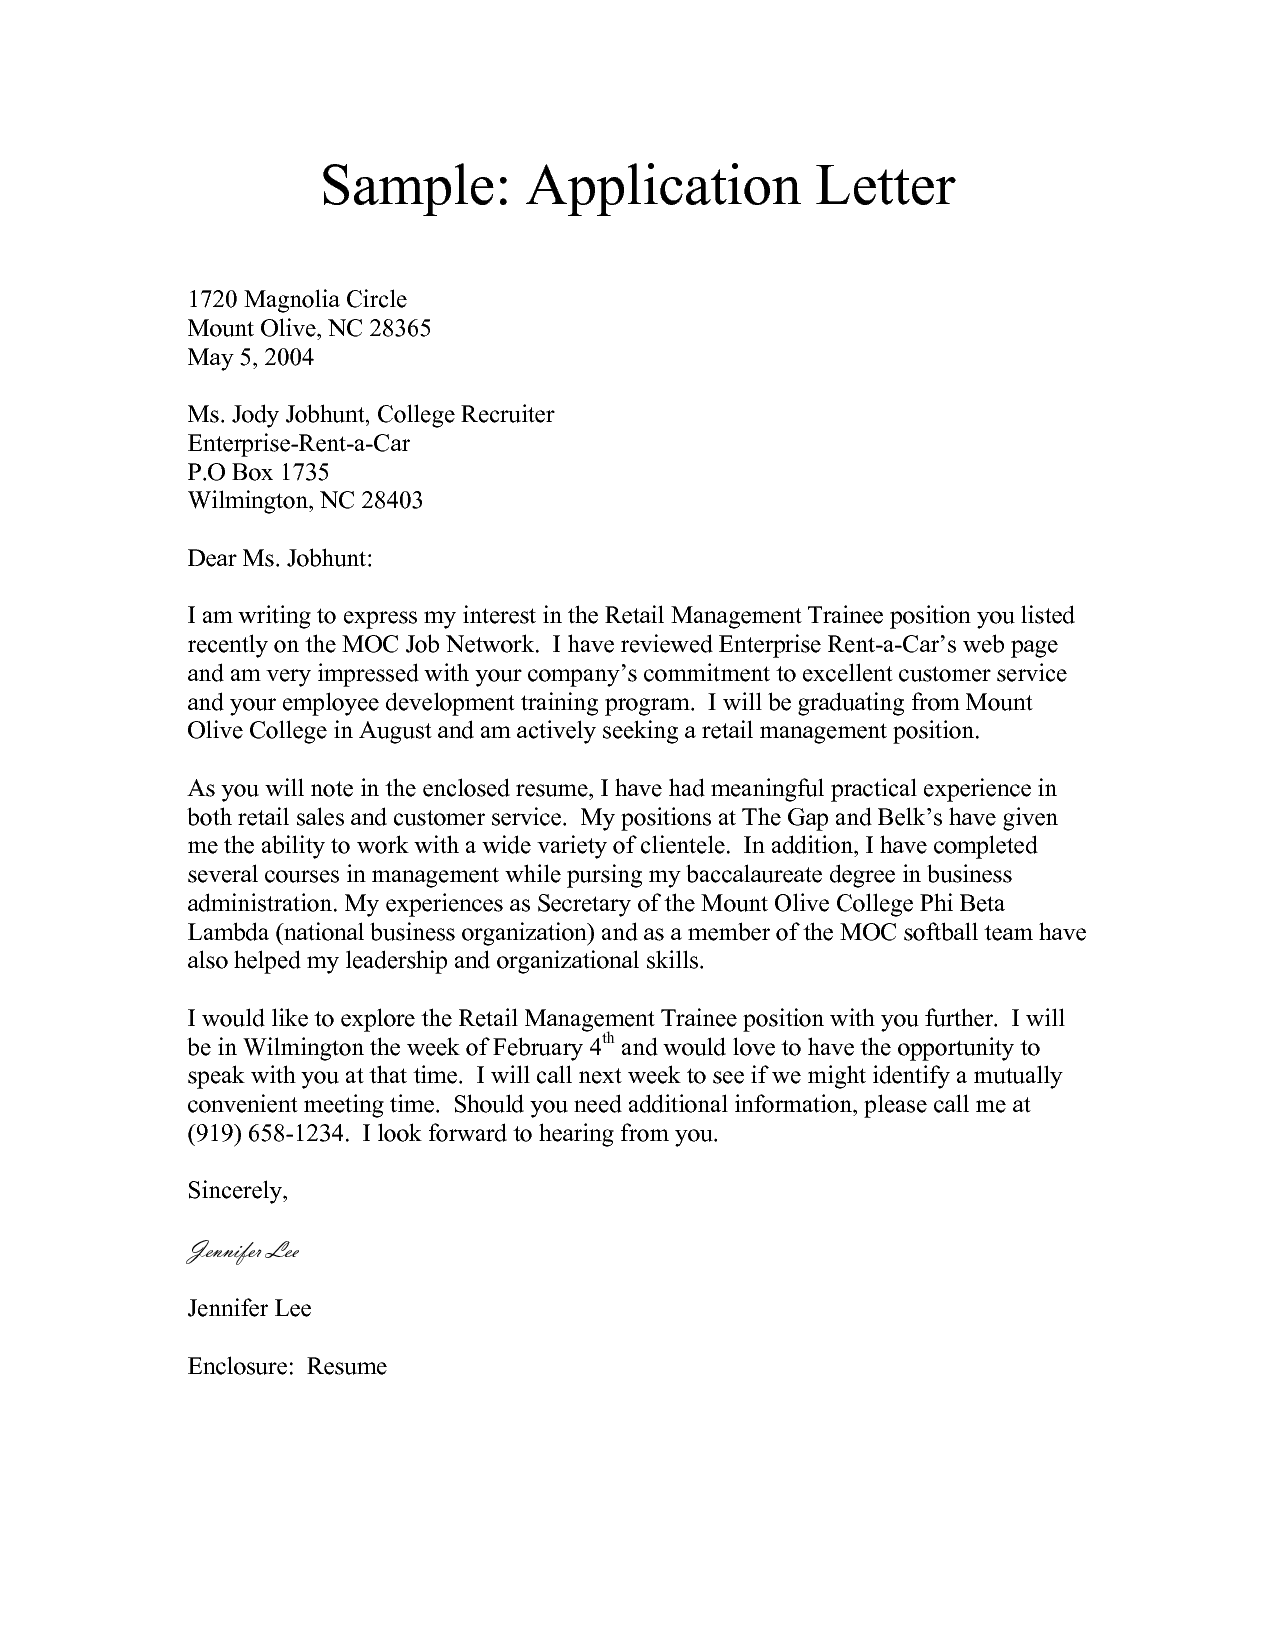 Application covering letter application letter pinterest application letter pdf format resignation with notice job international resume picture best free home design idea inspiration madrichimfo Gallery